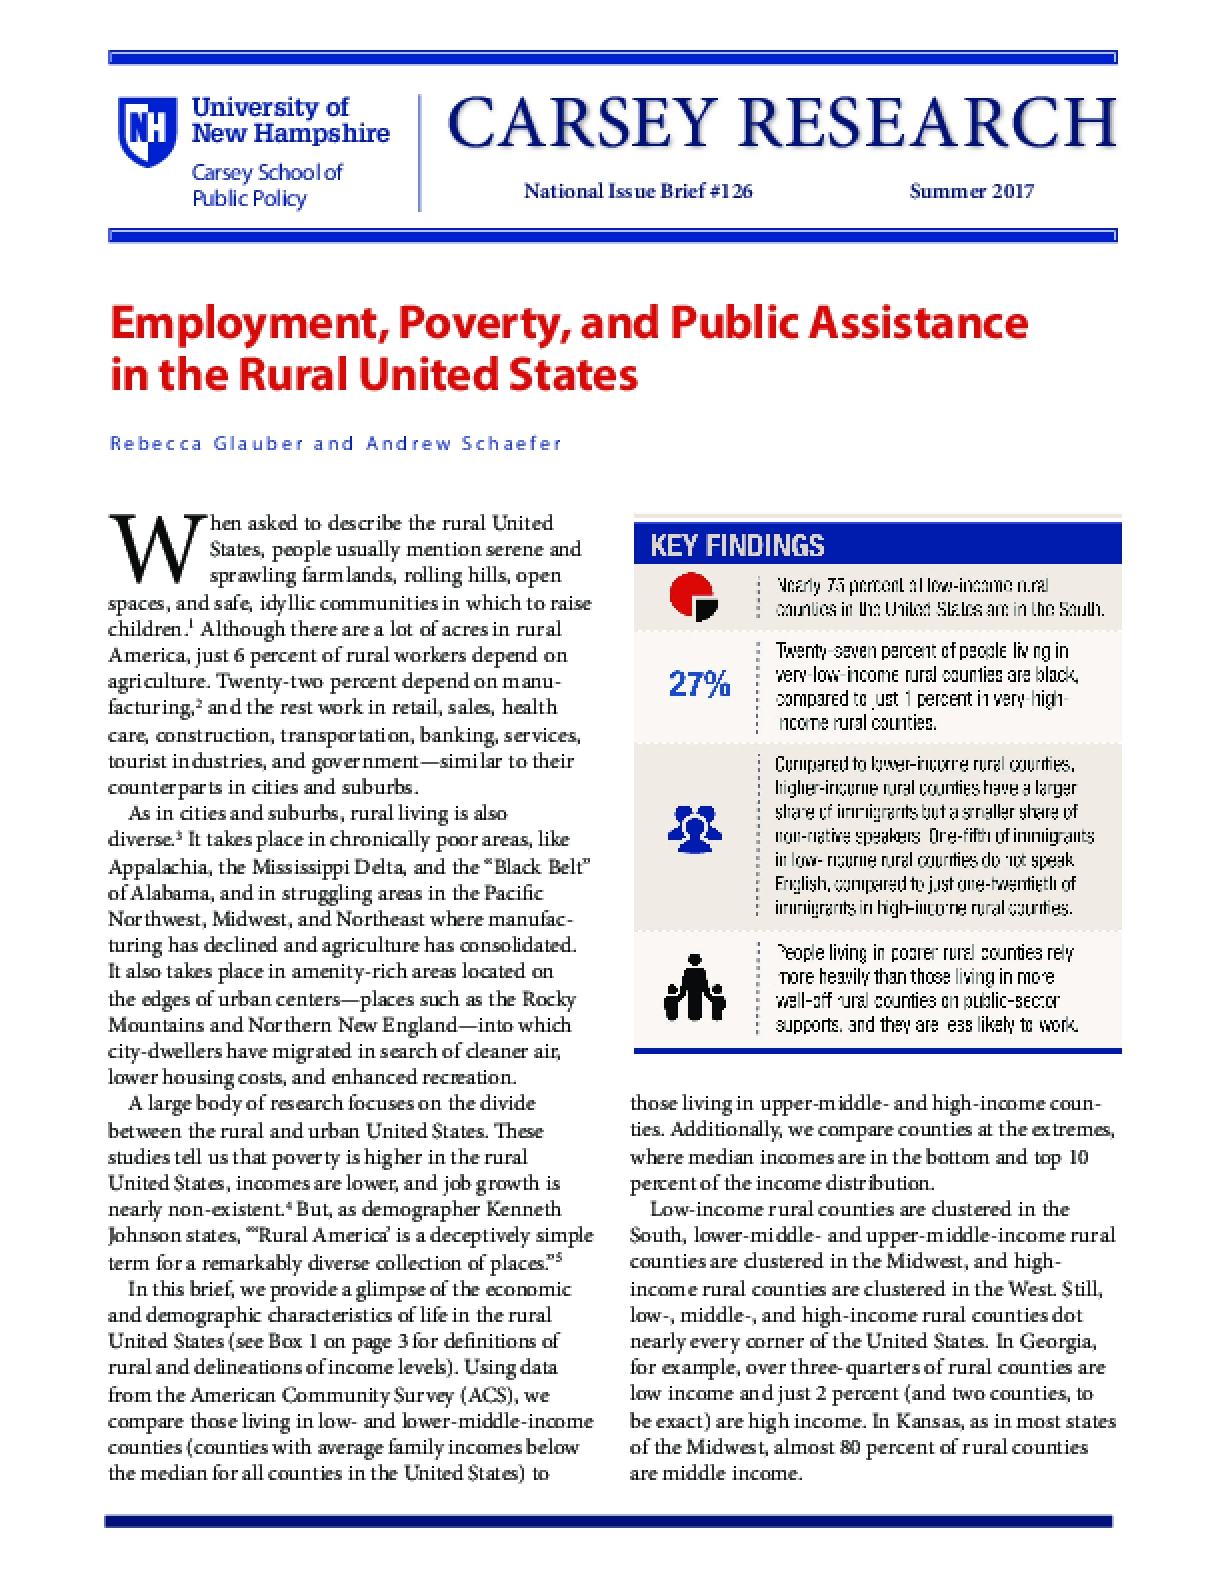 Employment, Poverty, and Public Assistance in the Rural United States